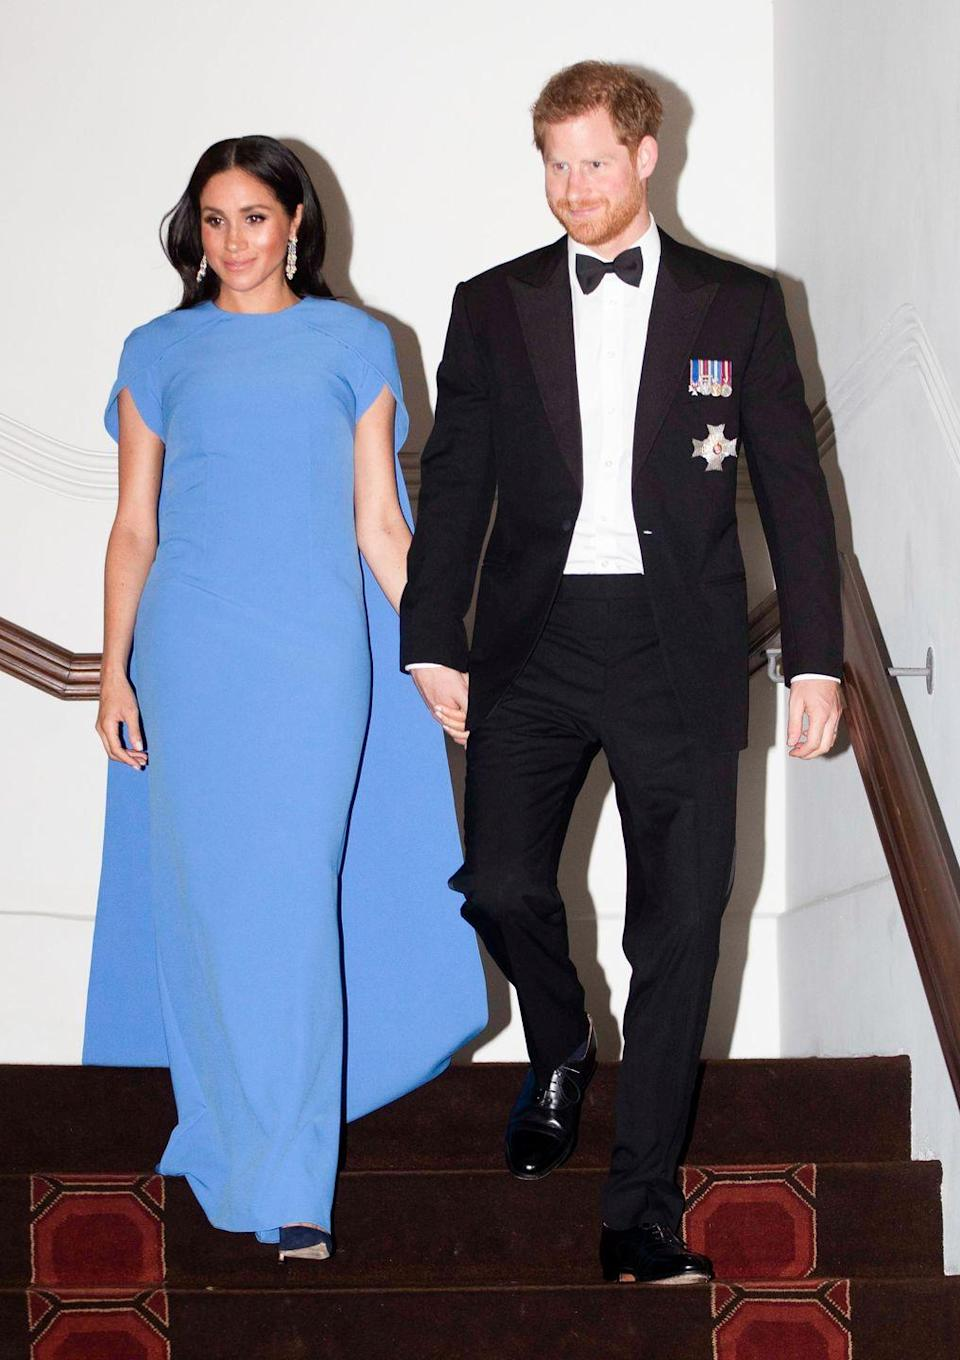 "<p>For a state dinner in Fiji, the Duchess dressed up in a bright blue caped gown by London-based <a href=""https://www.safiyaa.com/pages/about"" rel=""nofollow noopener"" target=""_blank"" data-ylk=""slk:designer Safiyaa"" class=""link rapid-noclick-resp"">designer Safiyaa</a>. She accessorized with diamond drop earrings and a sleek blowout.</p>"